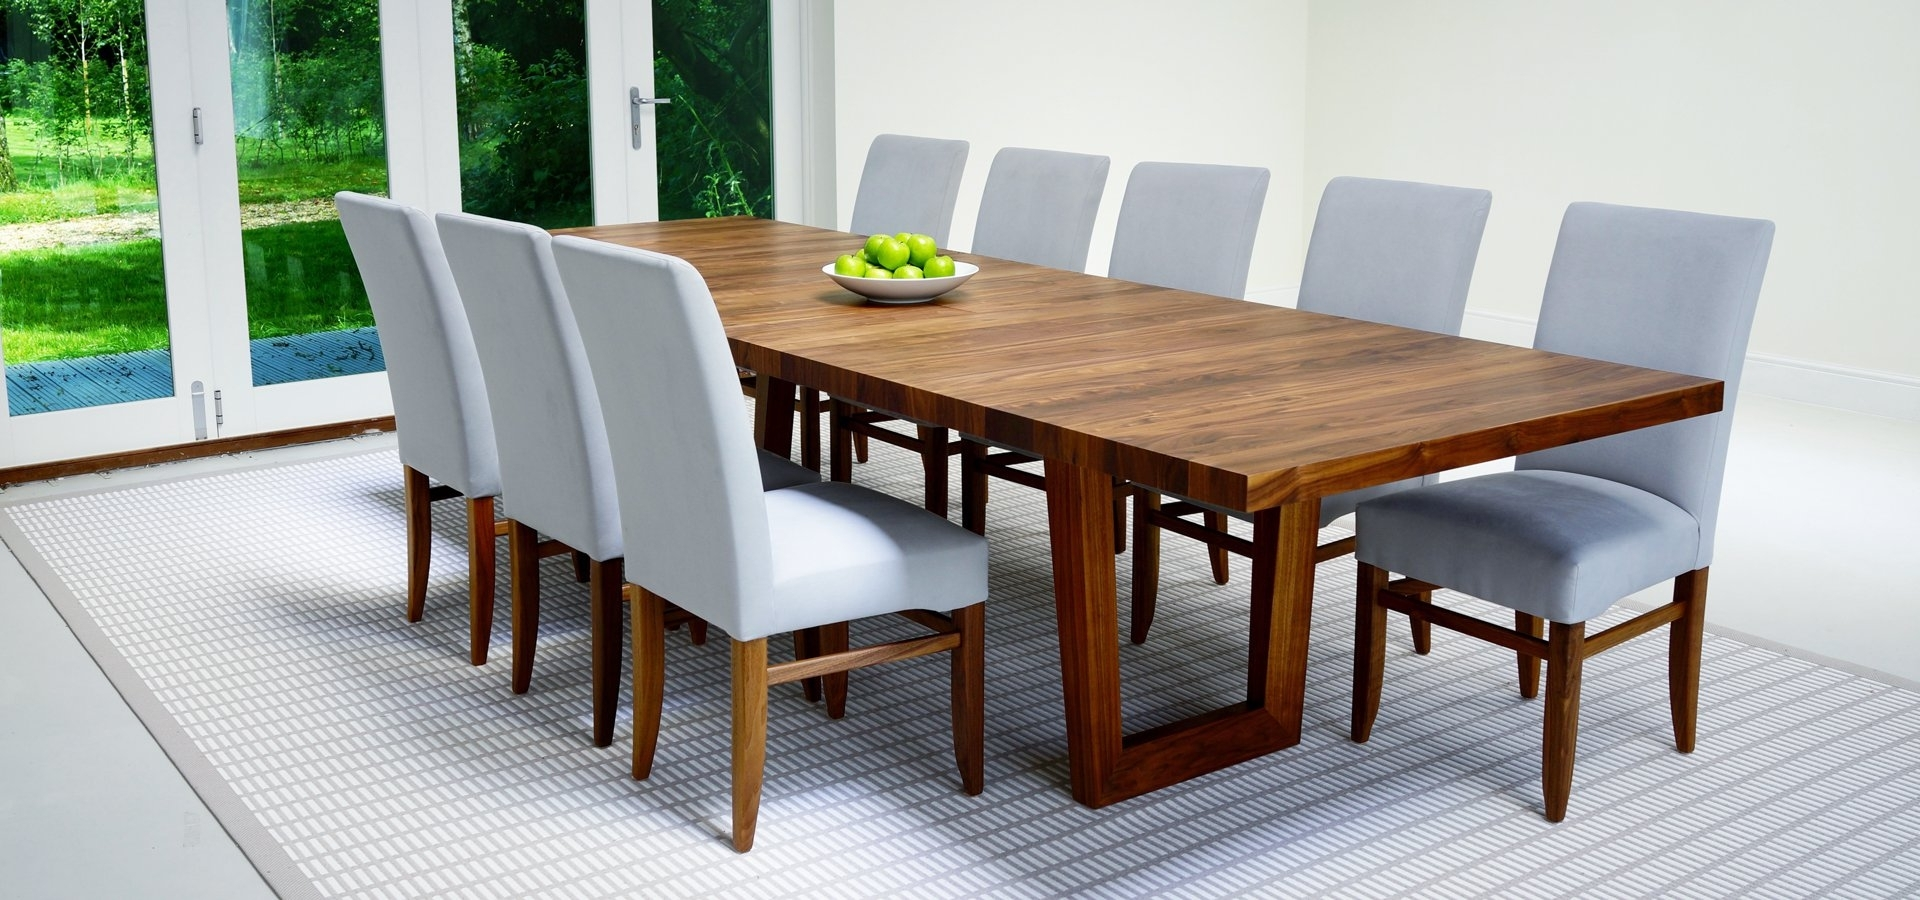 Most Current Walnut Dining Tables And Chairs With Regard To Walnut Dining Table Sets – Castrophotos (View 12 of 25)